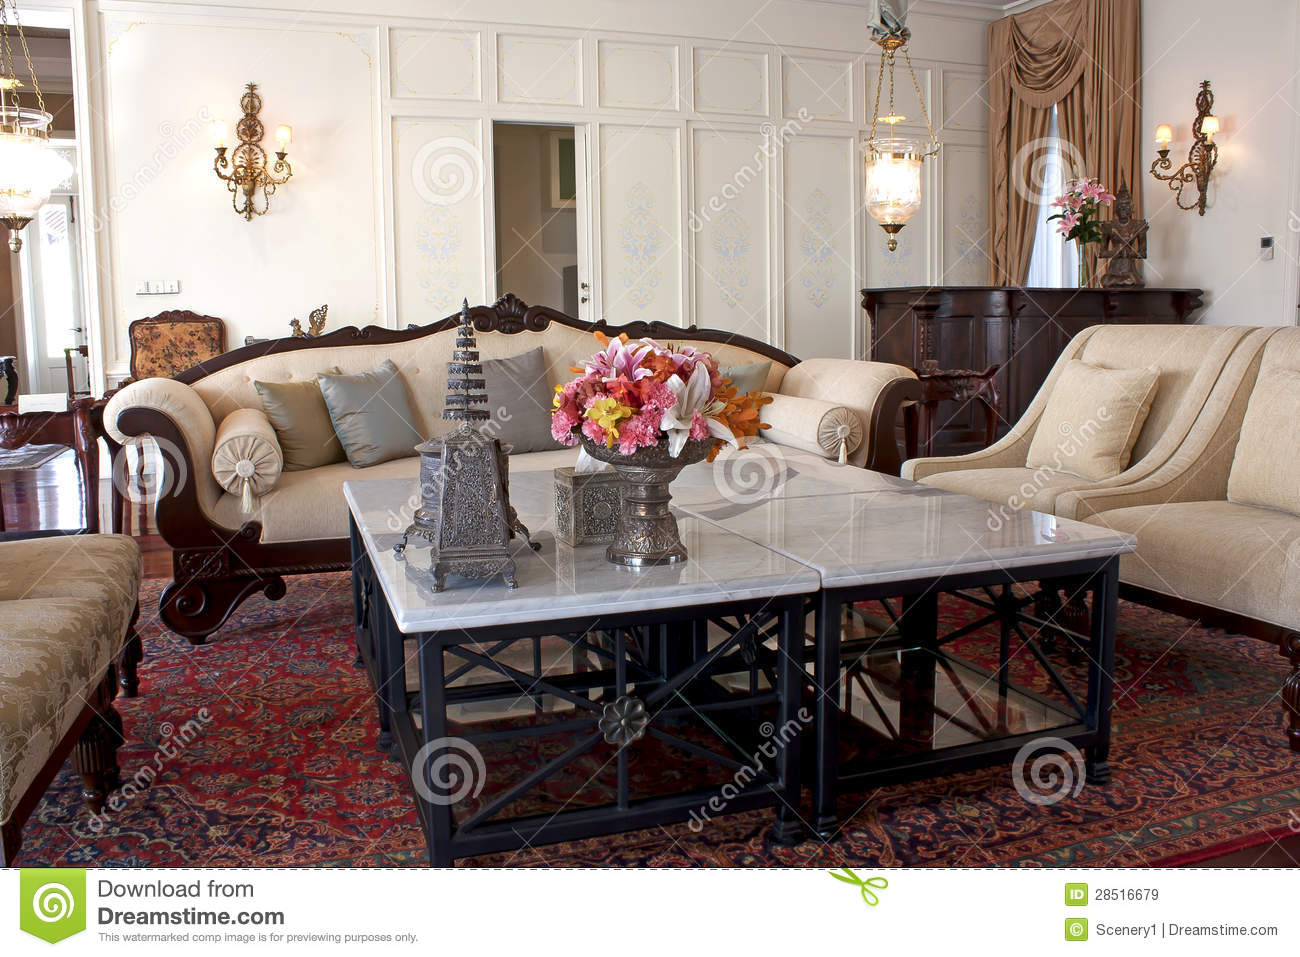 Classic drawing room with baroque furniture stock image for Drawing room farnichar